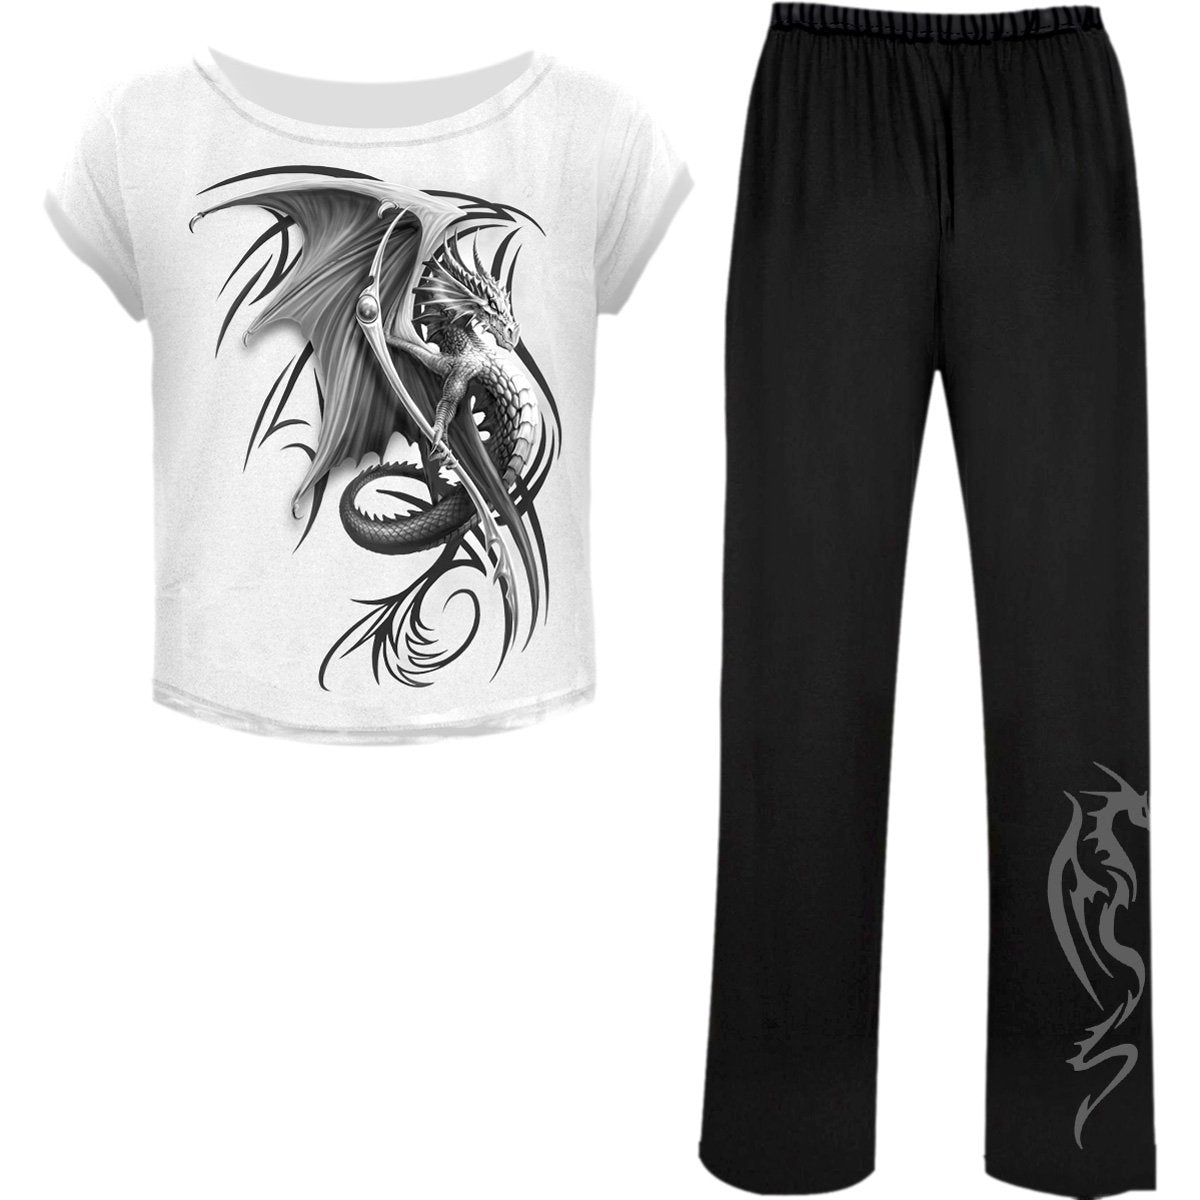 Tribal Dragon Women's 4-Piece Pajama Set